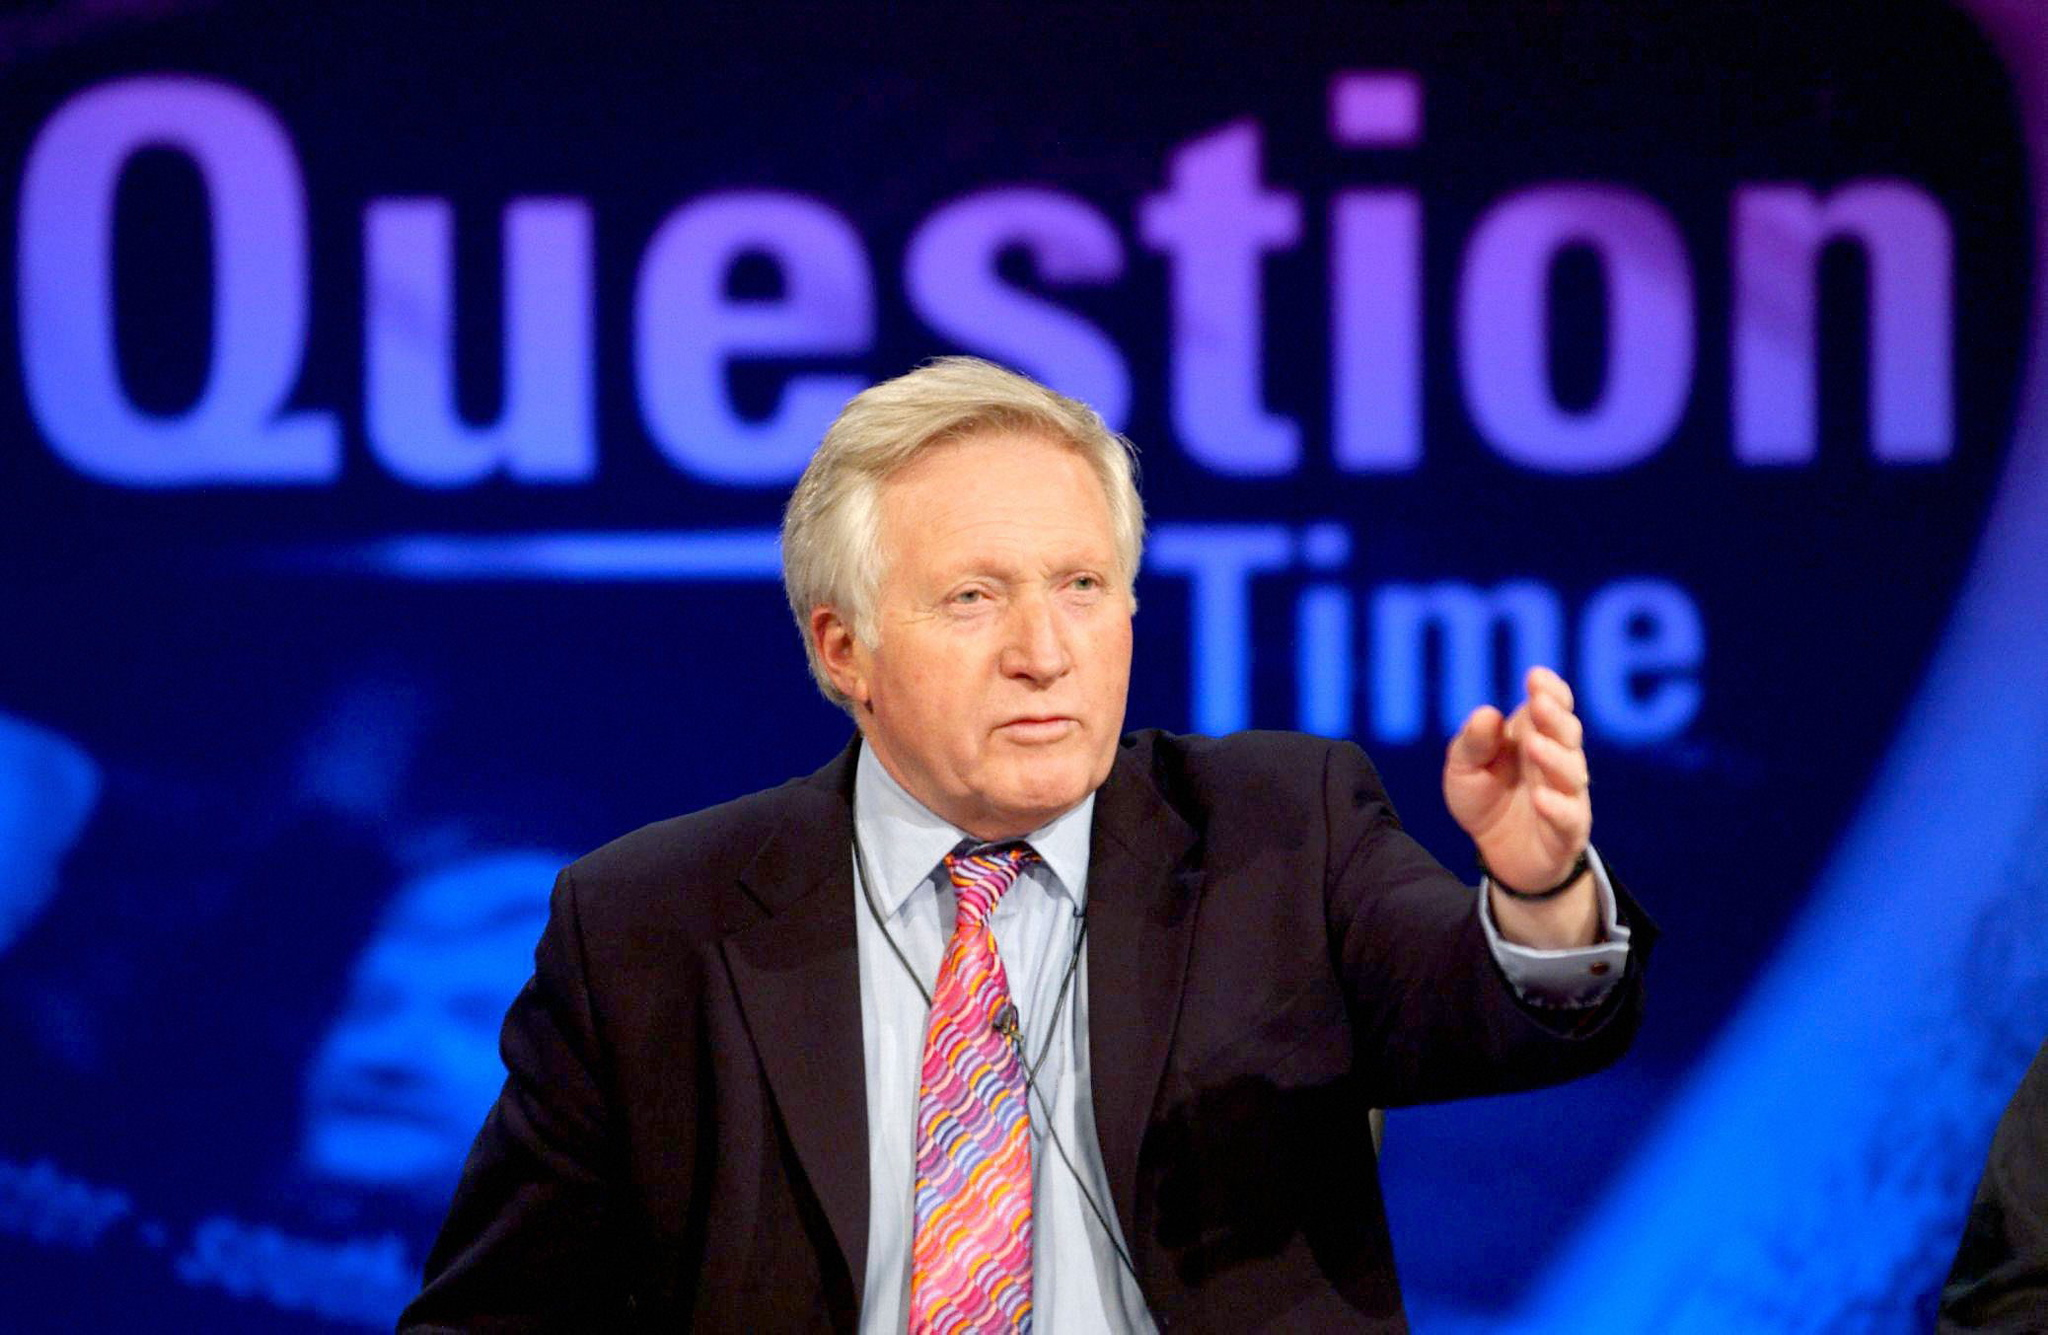 Image result for question time images